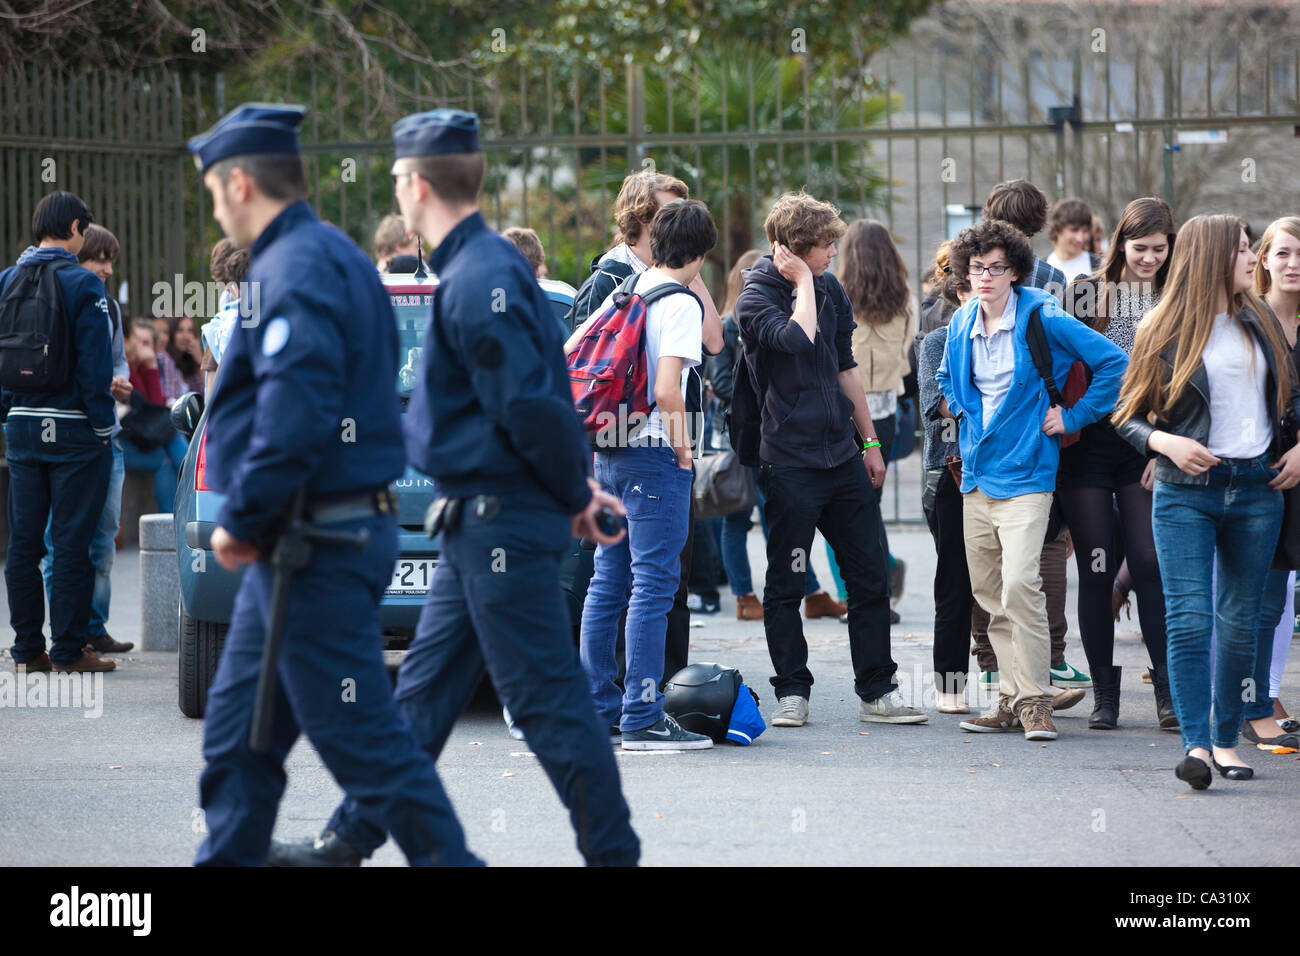 Toulouse, France. 28.03.2012 Picture shows French Police patrolling the streets outside the Lycée Ozenne high - Stock Image